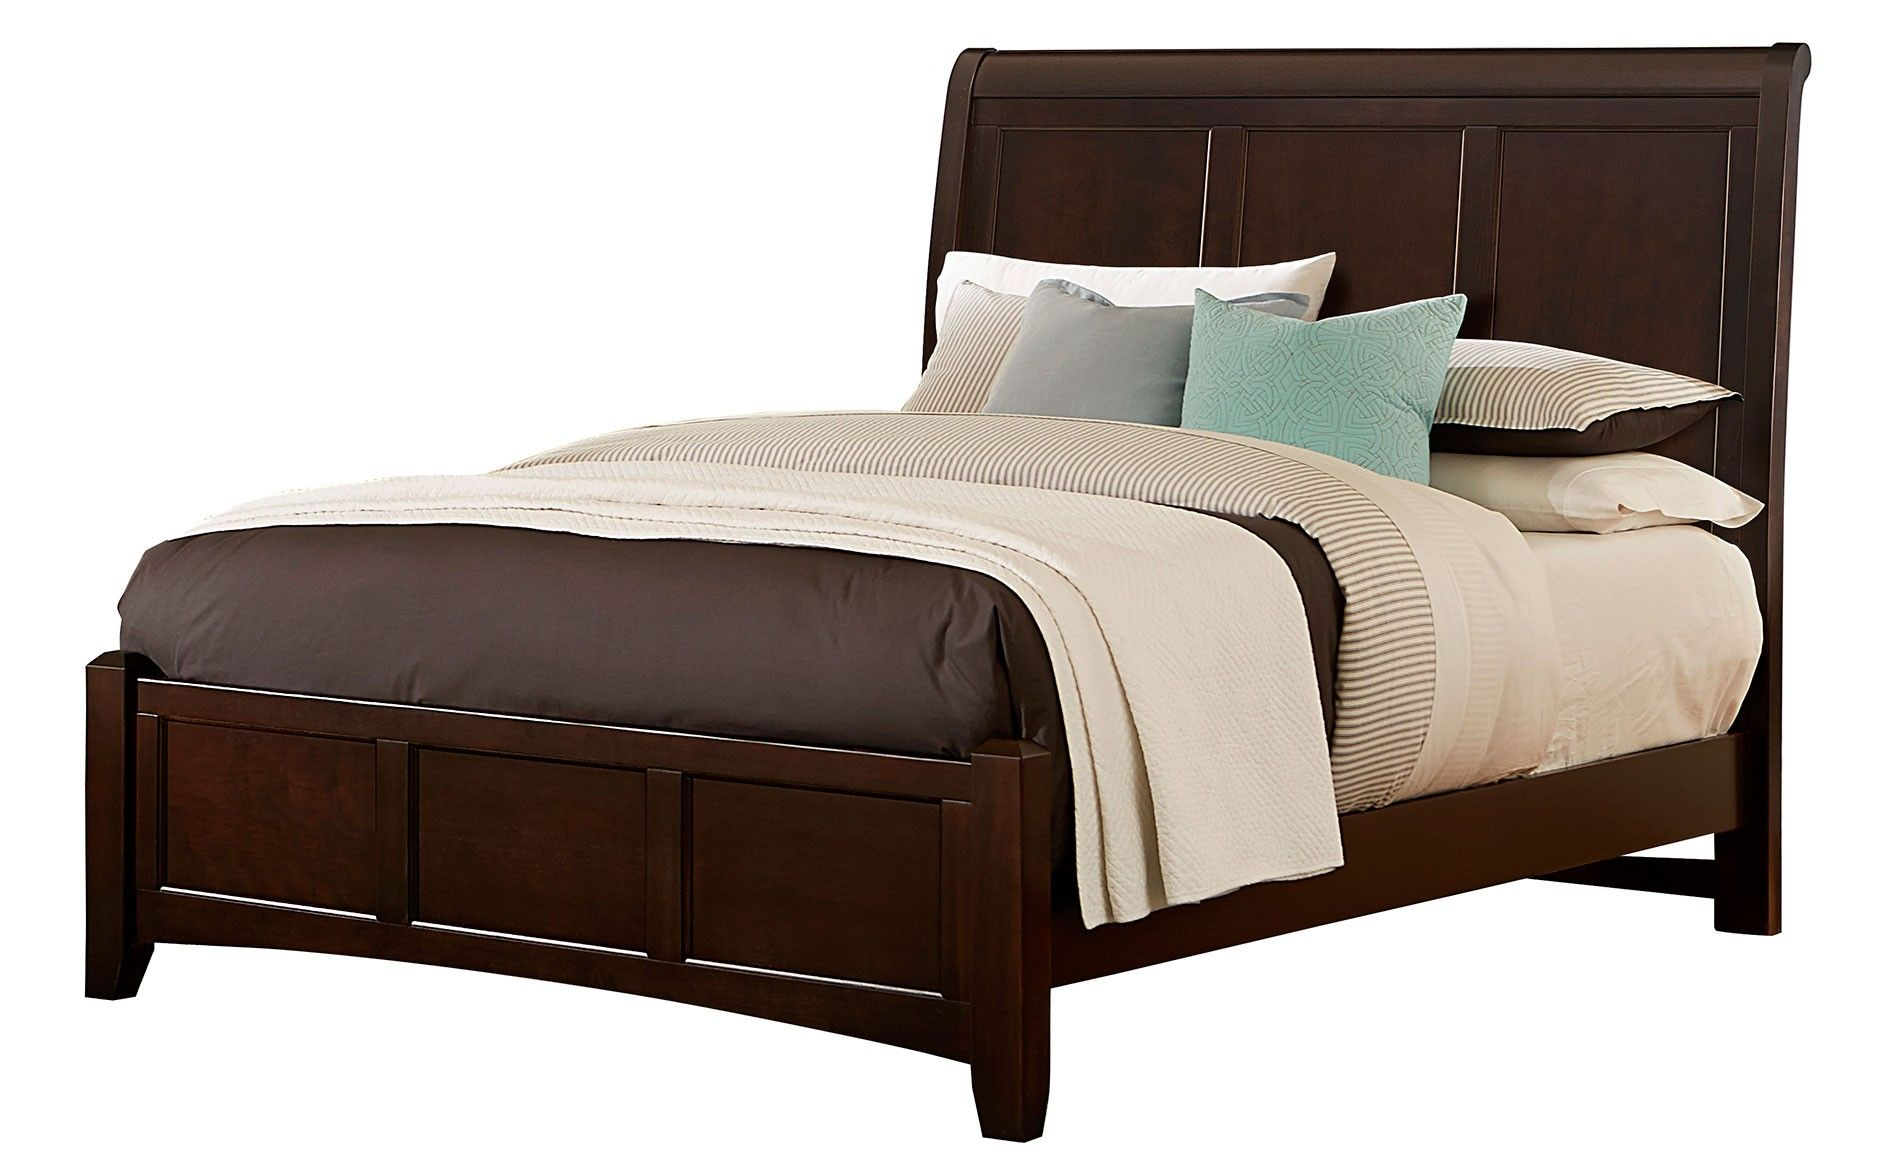 vb full sleigh bed merlot casa pinterest beds sleigh beds